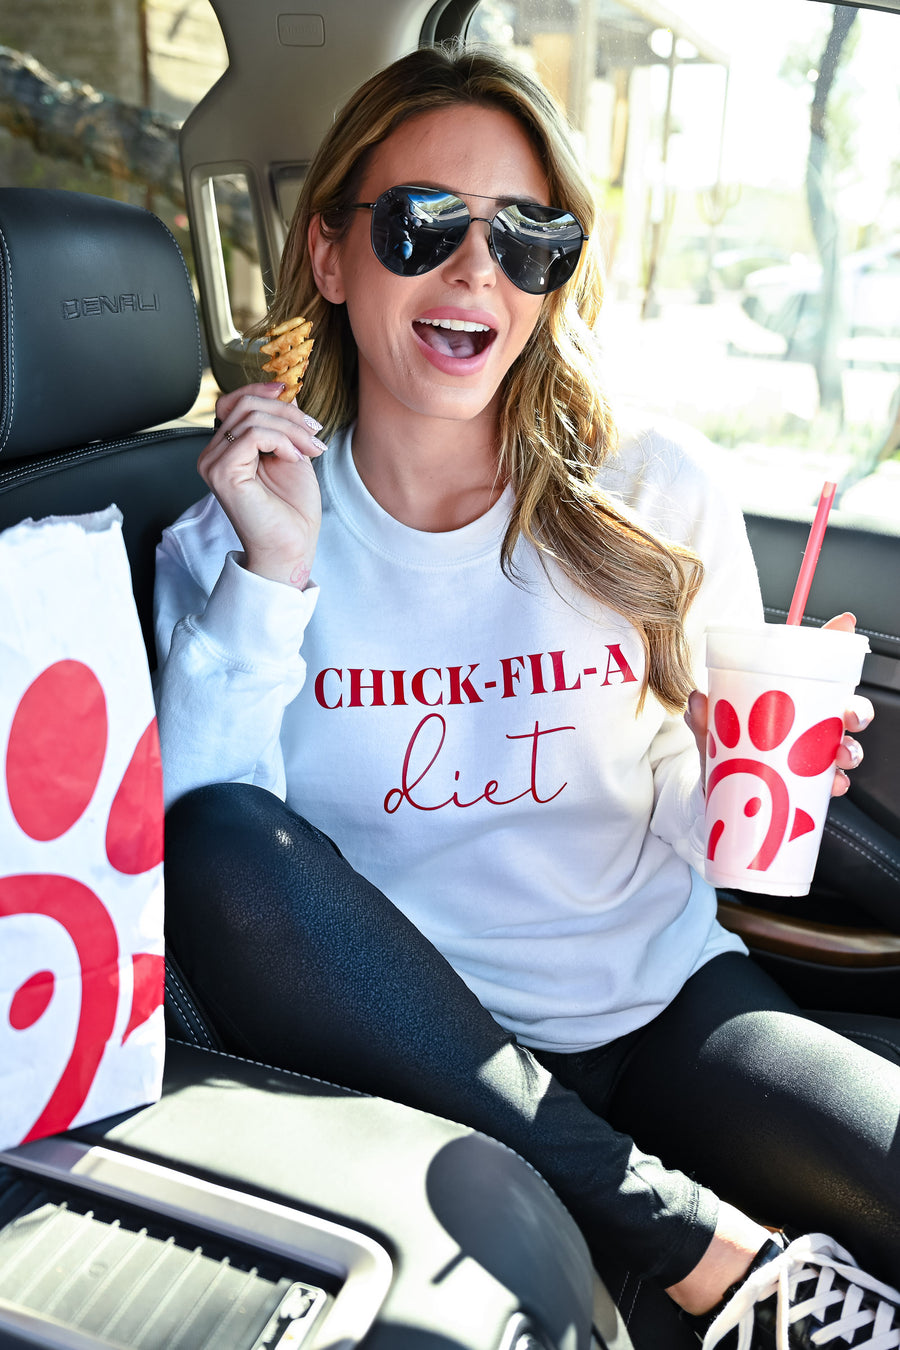 """Chick-Fil-A Diet"" Sweatshirt - White womens casual graphic long sleeve sweatshirt closet candy sitting"